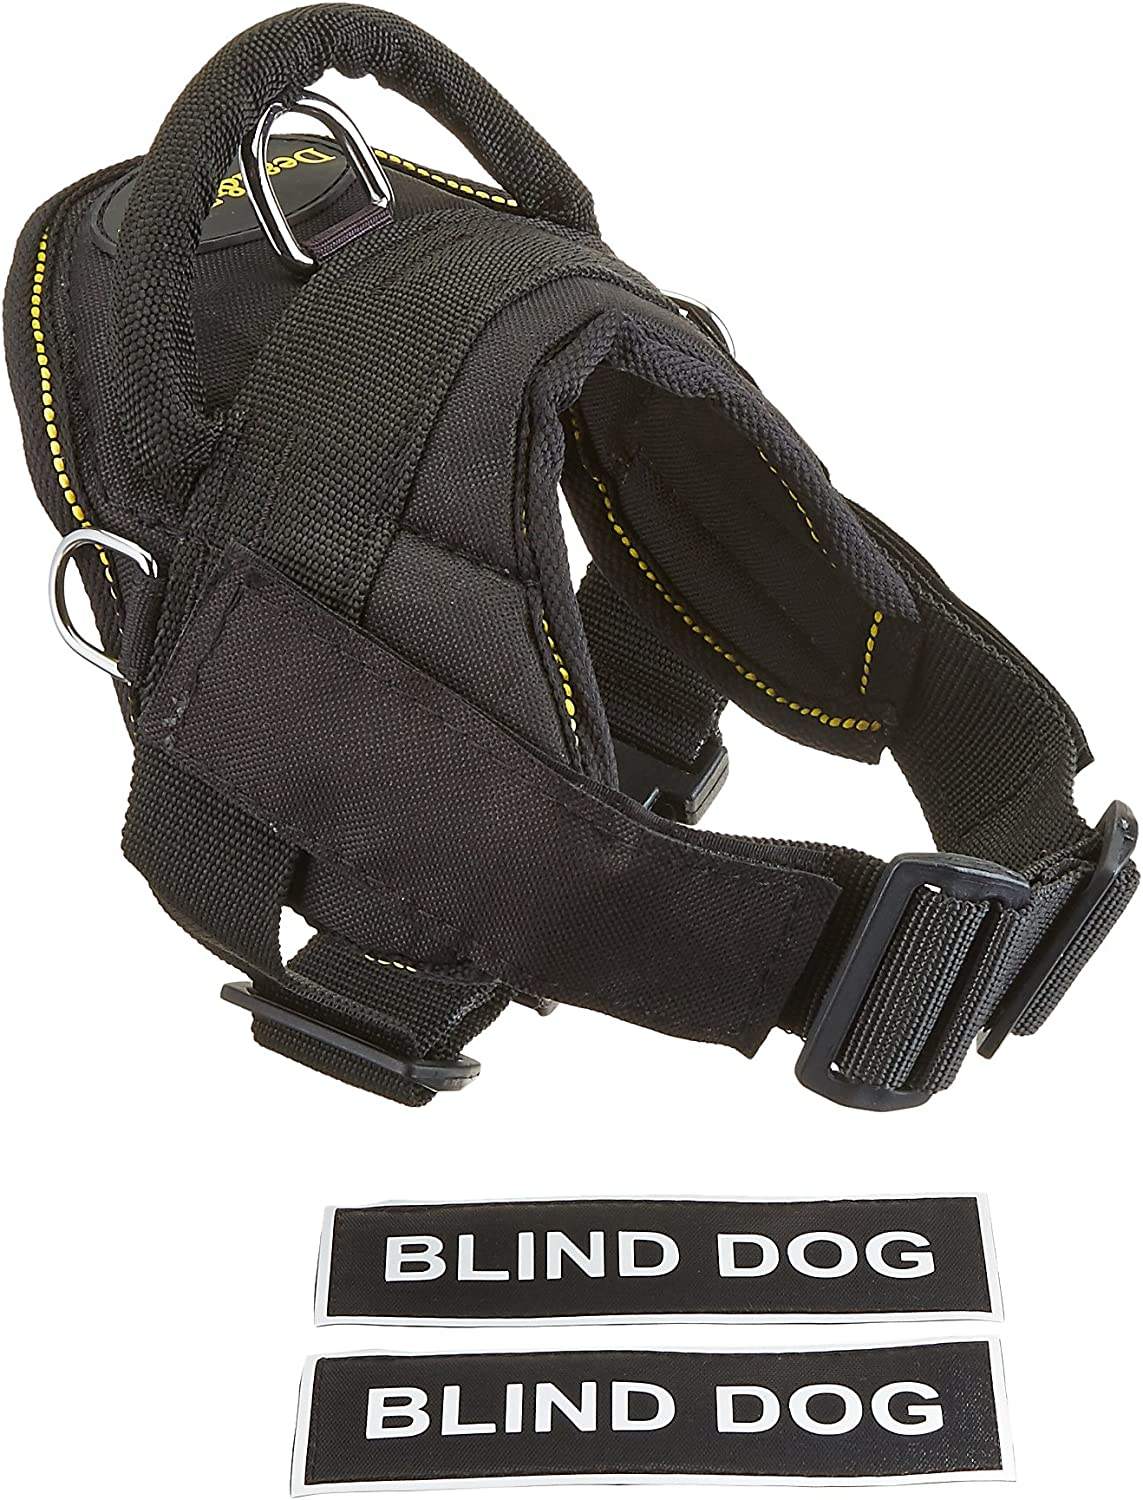 Dean & Tyler DT Fun Works Harness, Blind Dog, Black With Yellow Trim, XXSmall  Fits Girth Size  18Inch to 22Inch